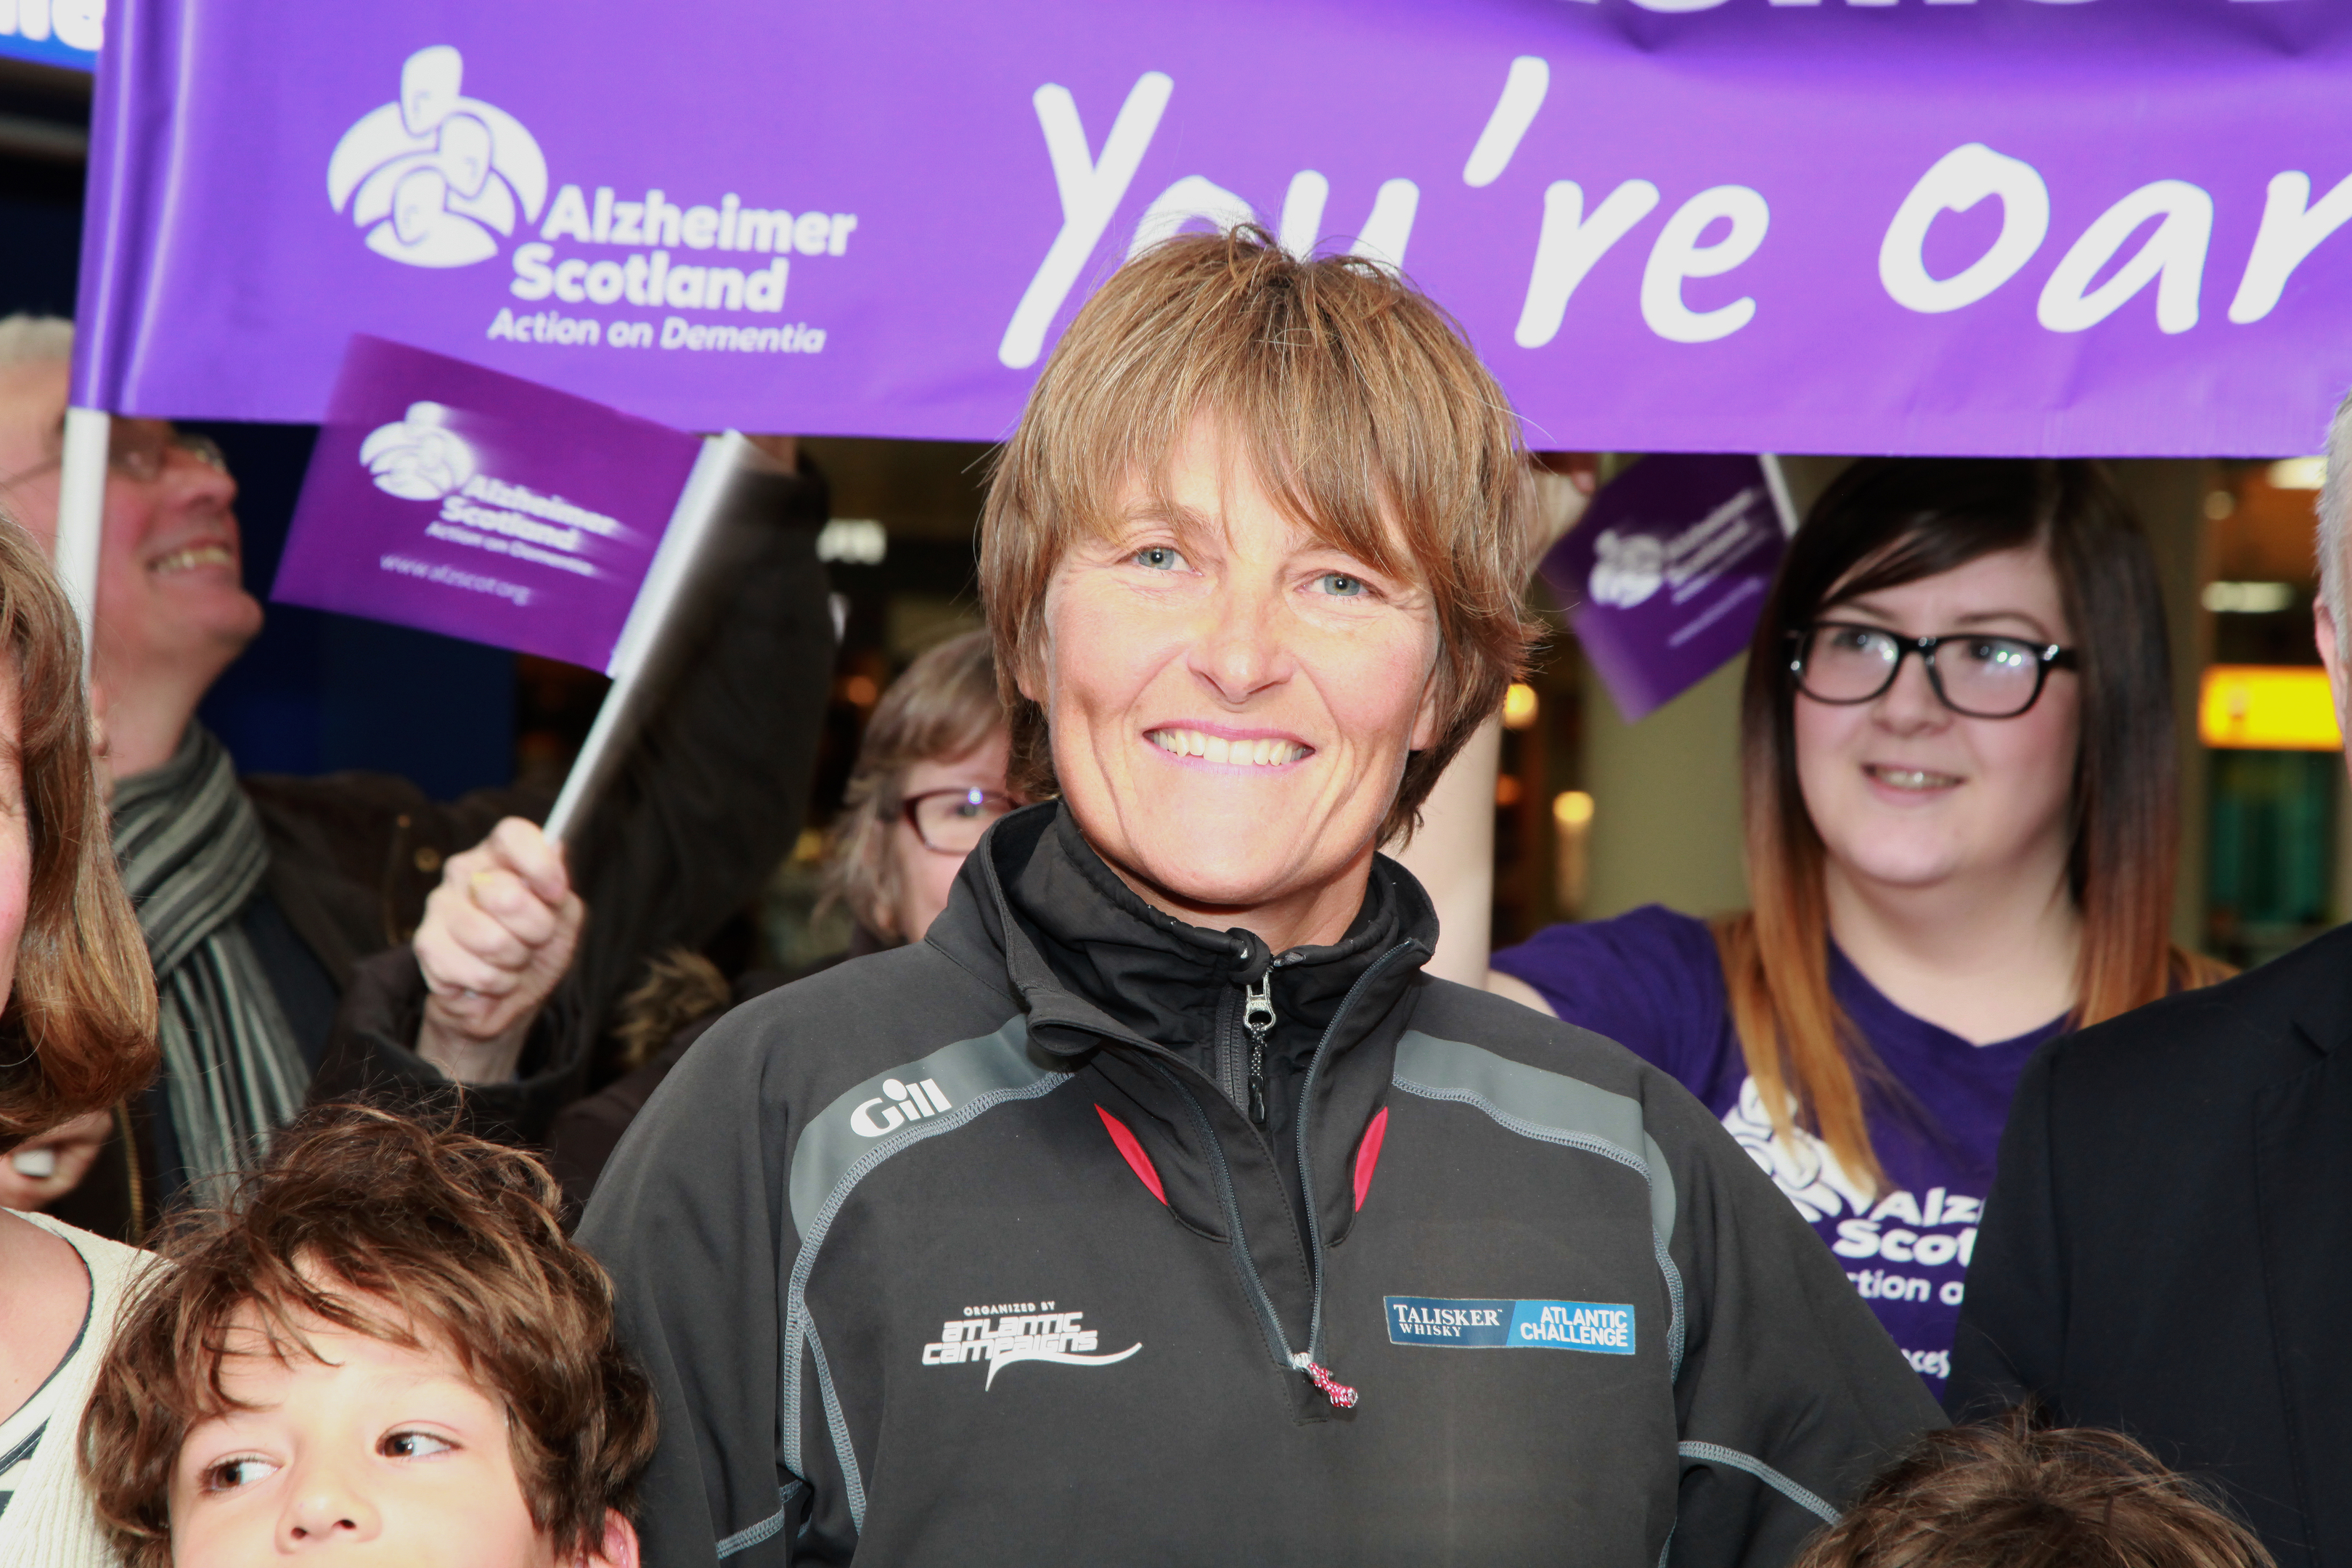 Elaine Hopley was welcomed home by supporters (Alzheimer Scotland)